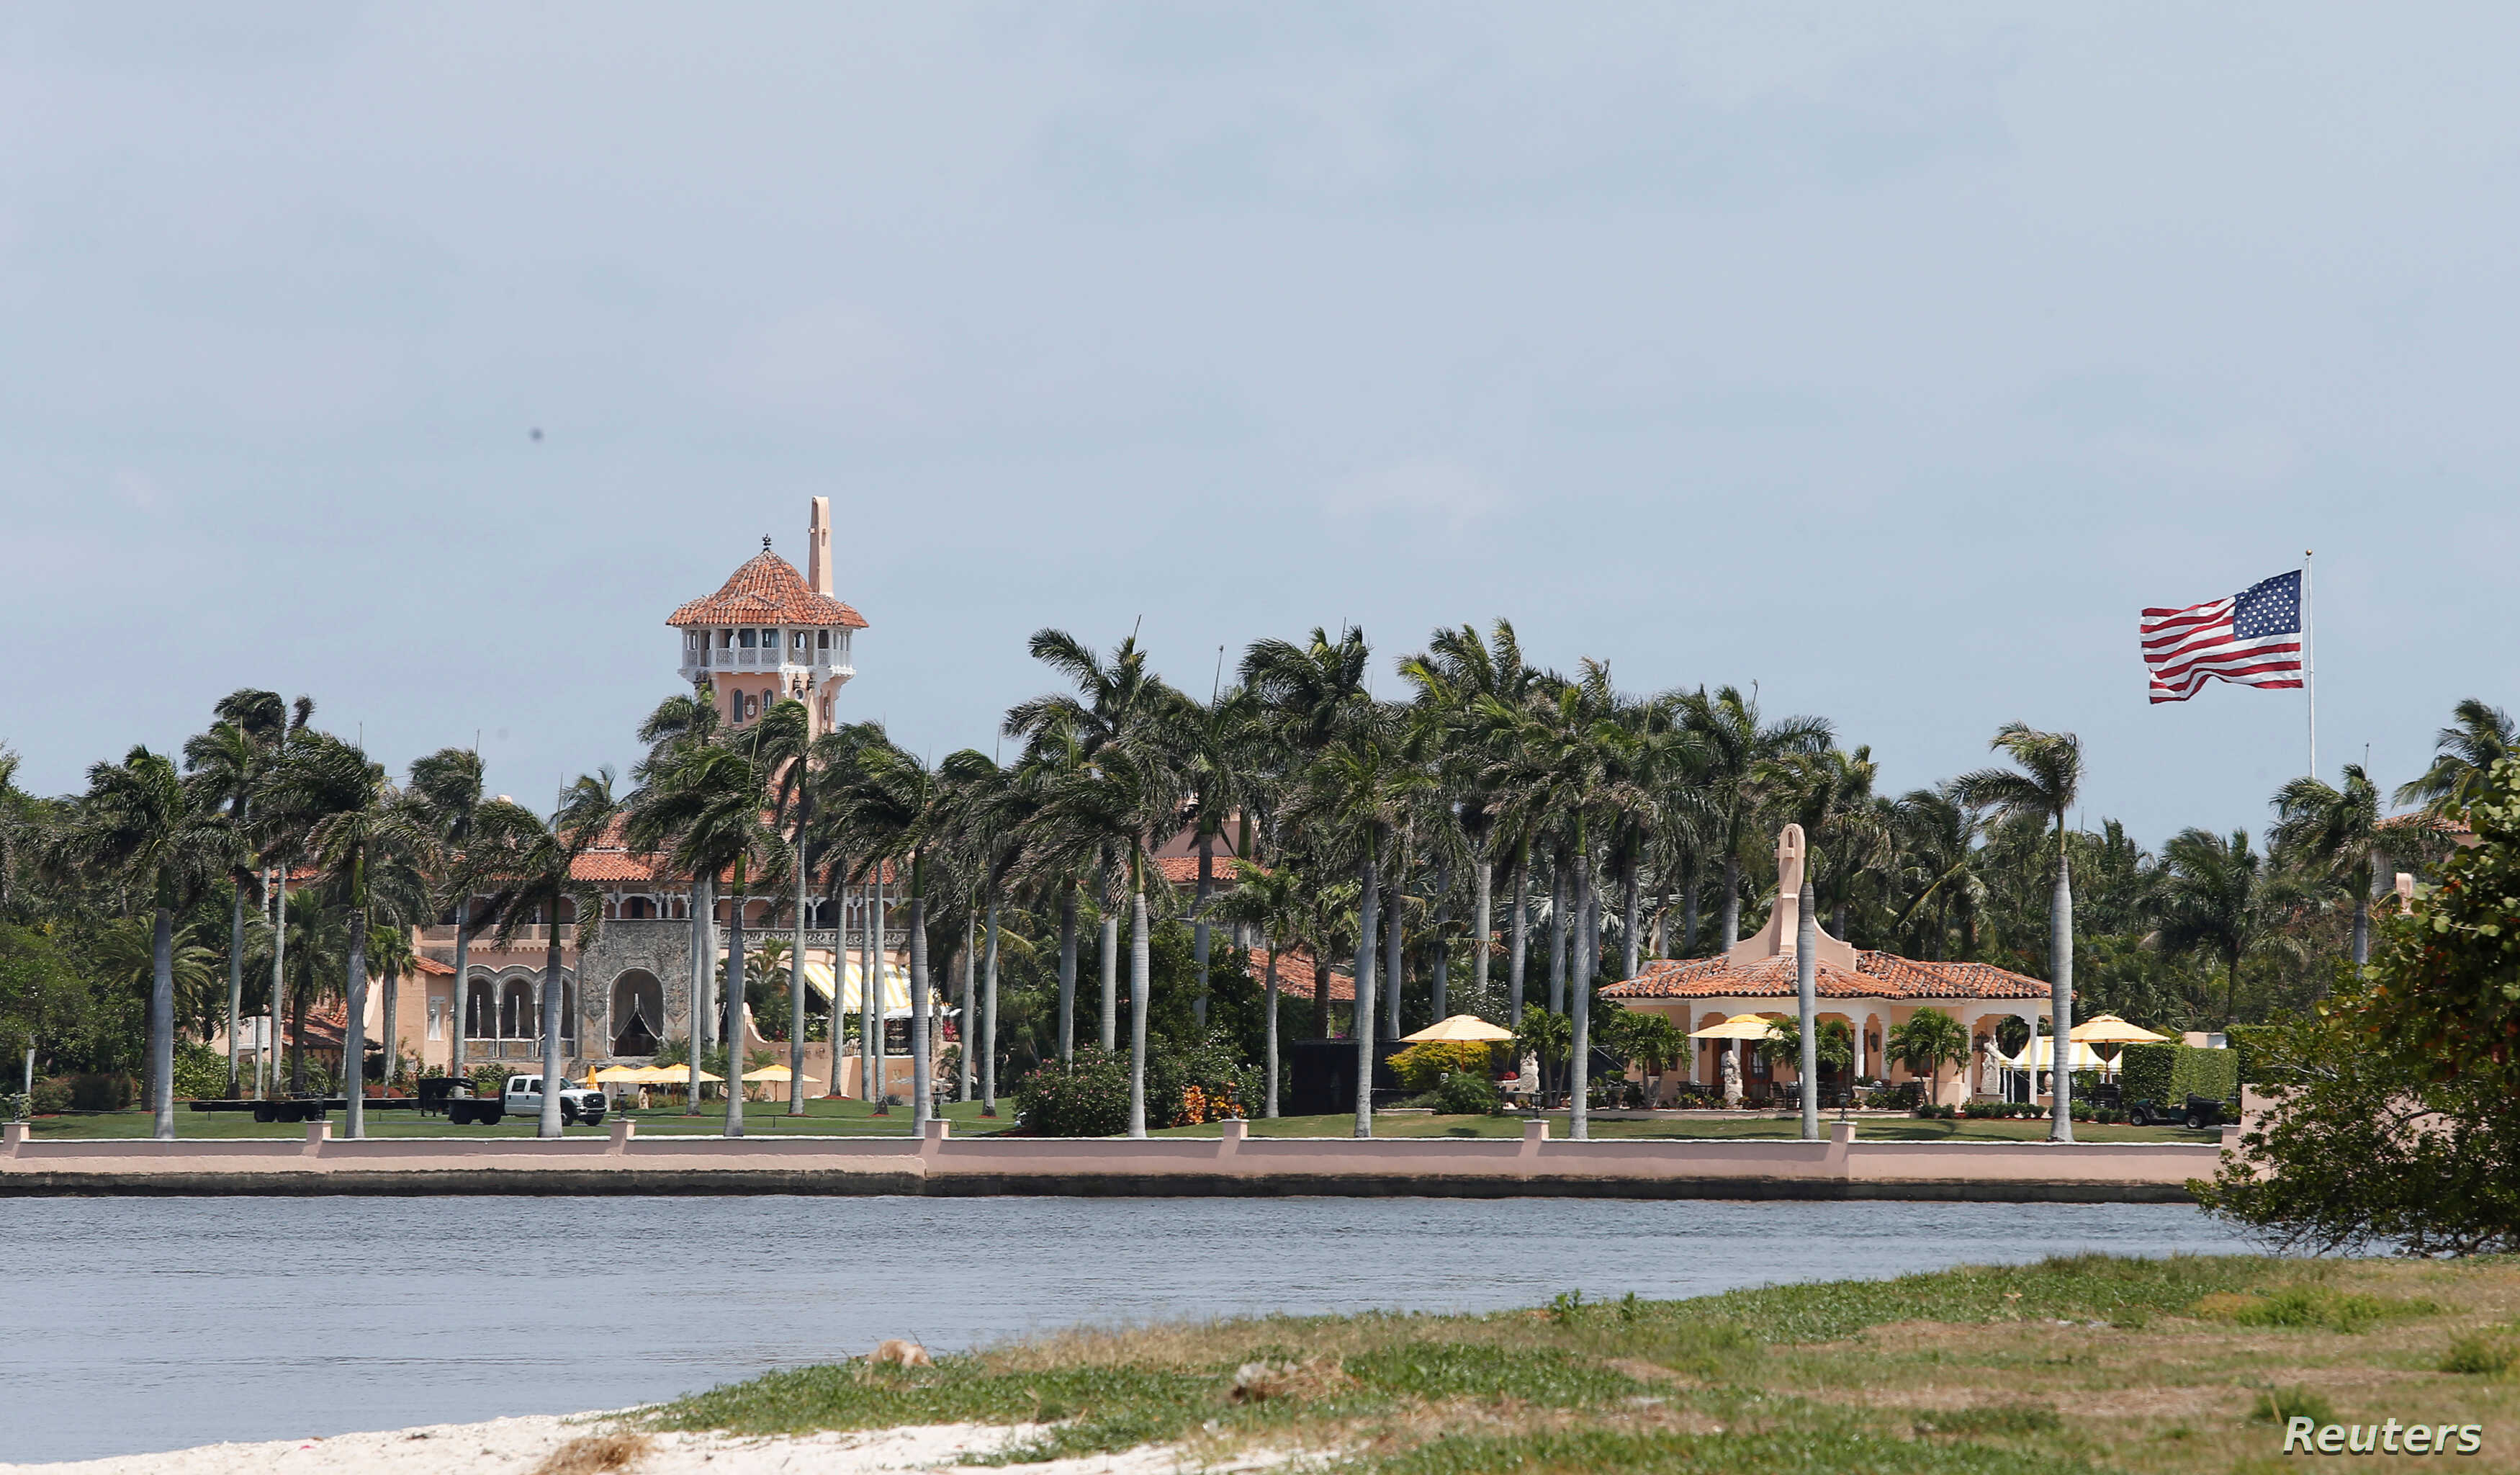 The Mar-a-Lago estate owned by U.S. President Donald Trump is shown with a U.S. flag in Palm Beach, Florida, April 5, 2017.